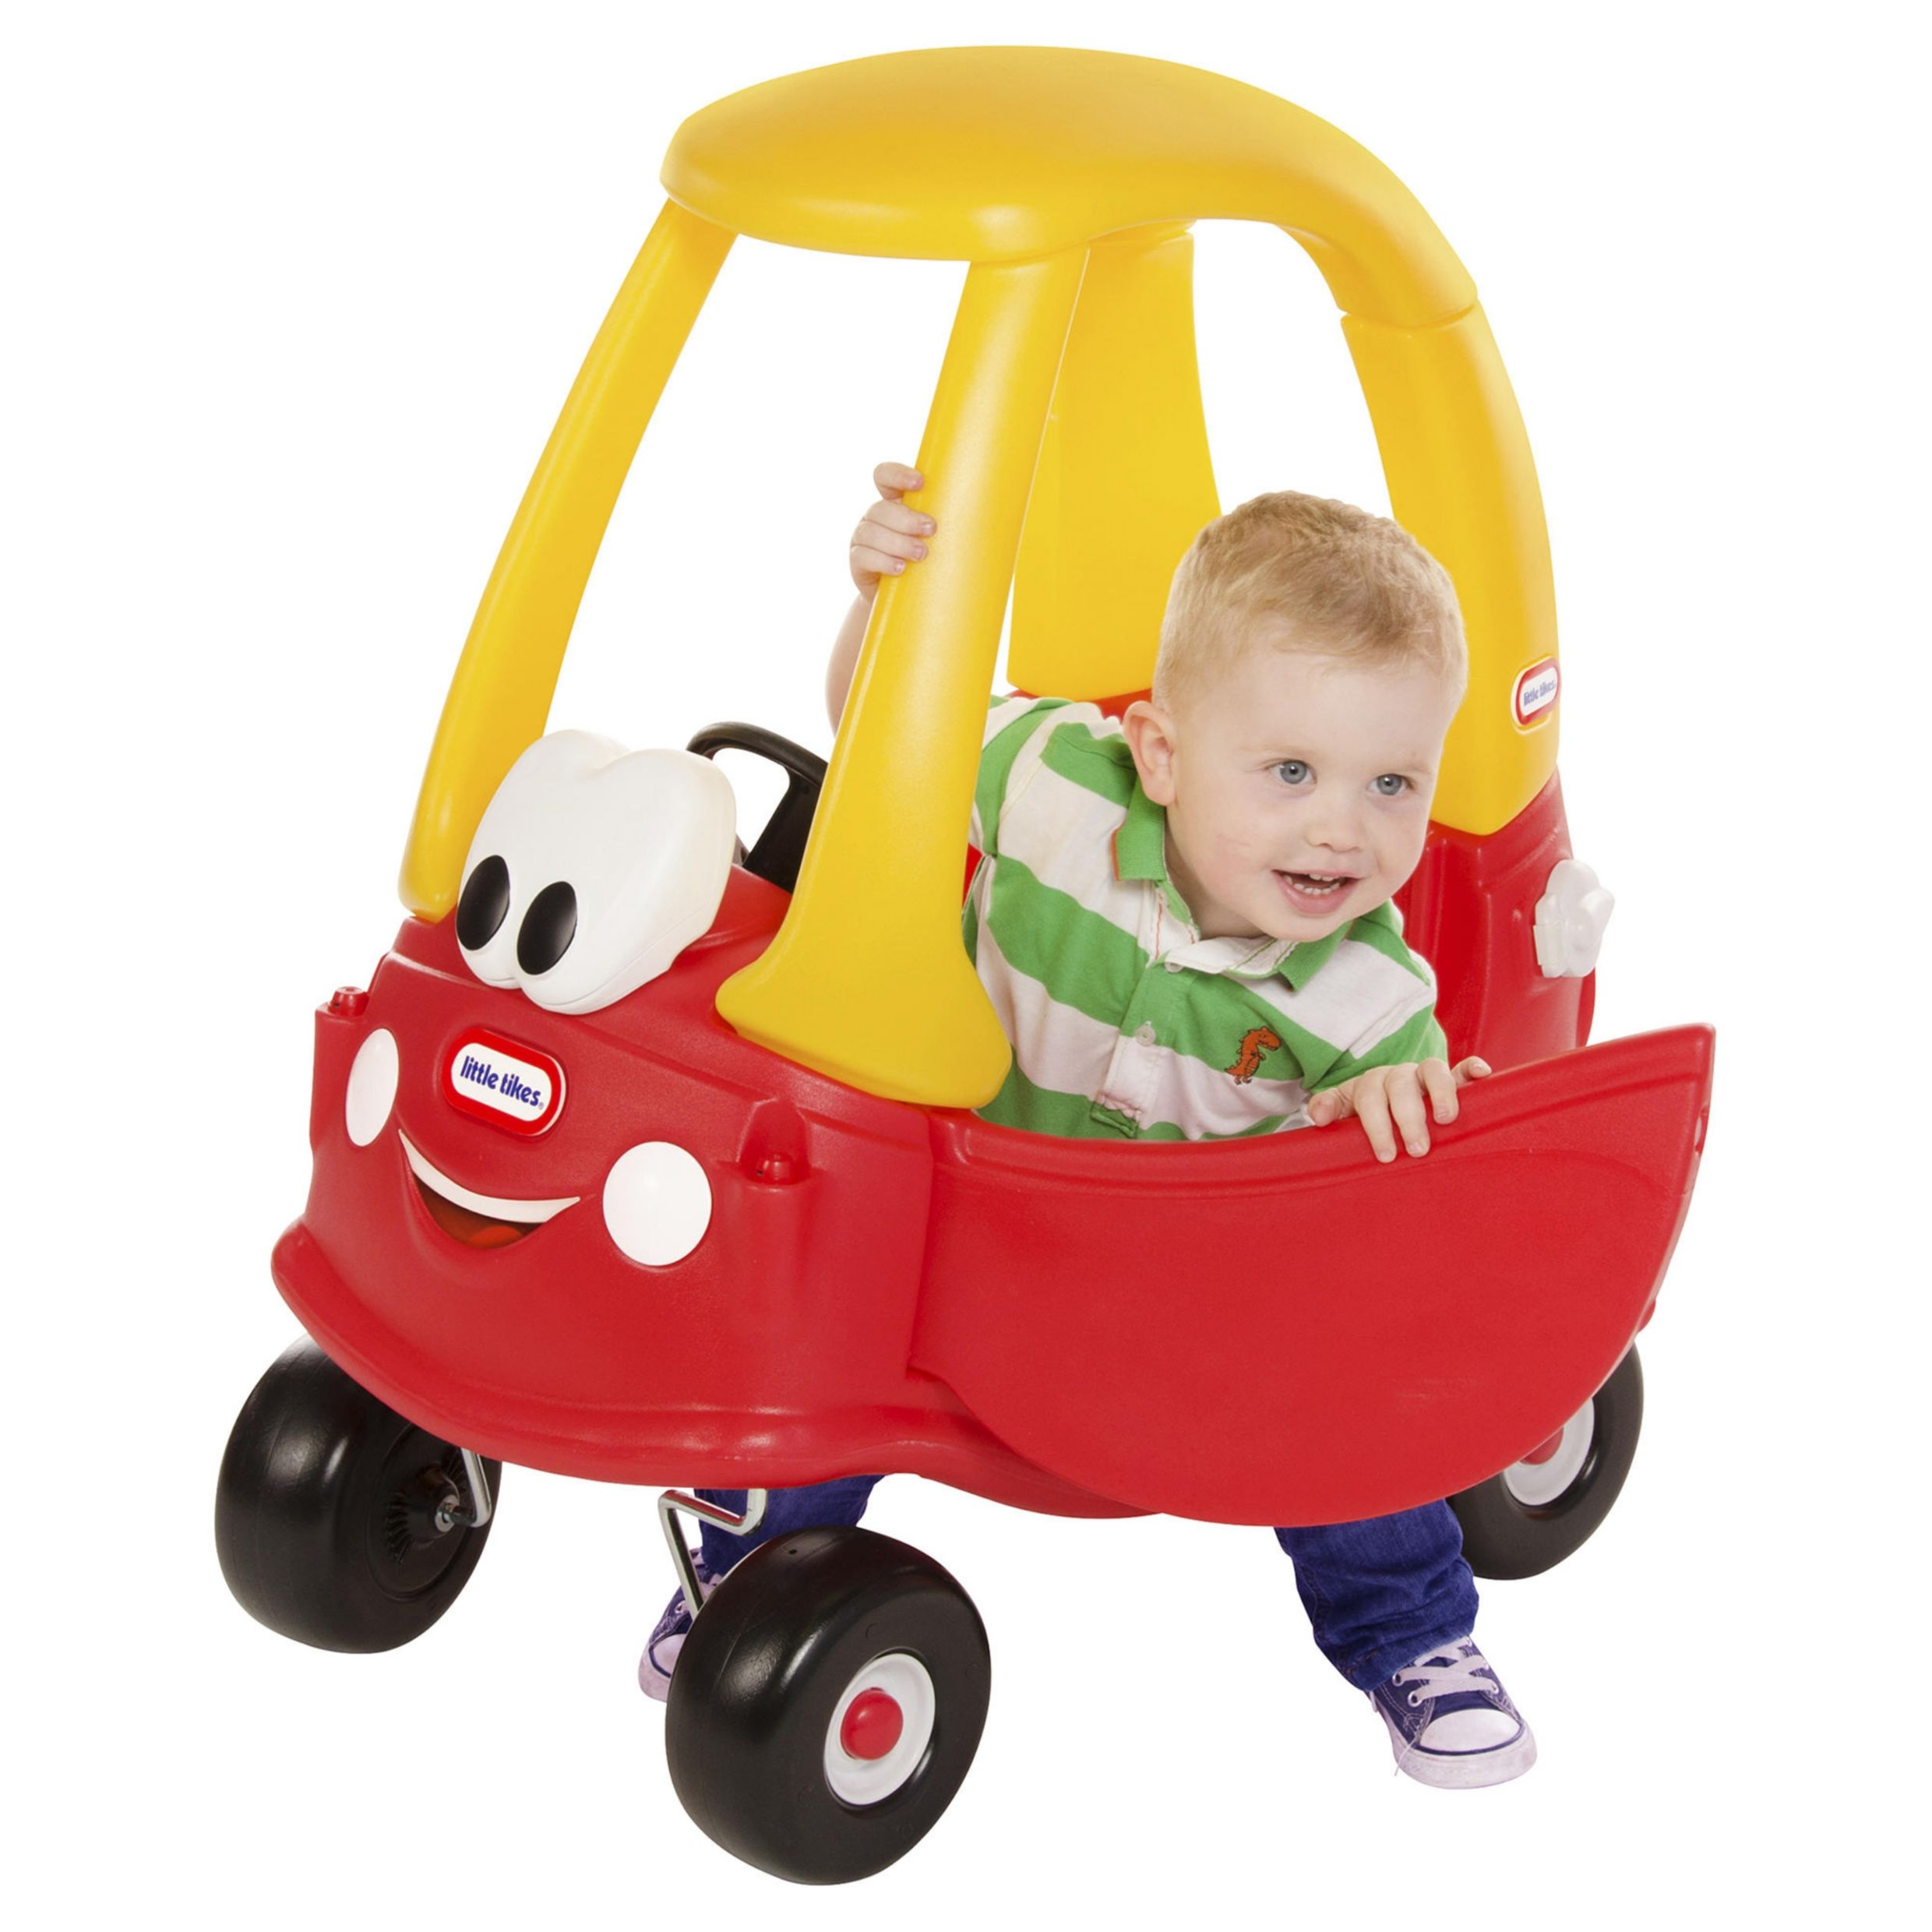 Top Little Tikes Toys : Little tikes classic police red cozy coupe car indoor